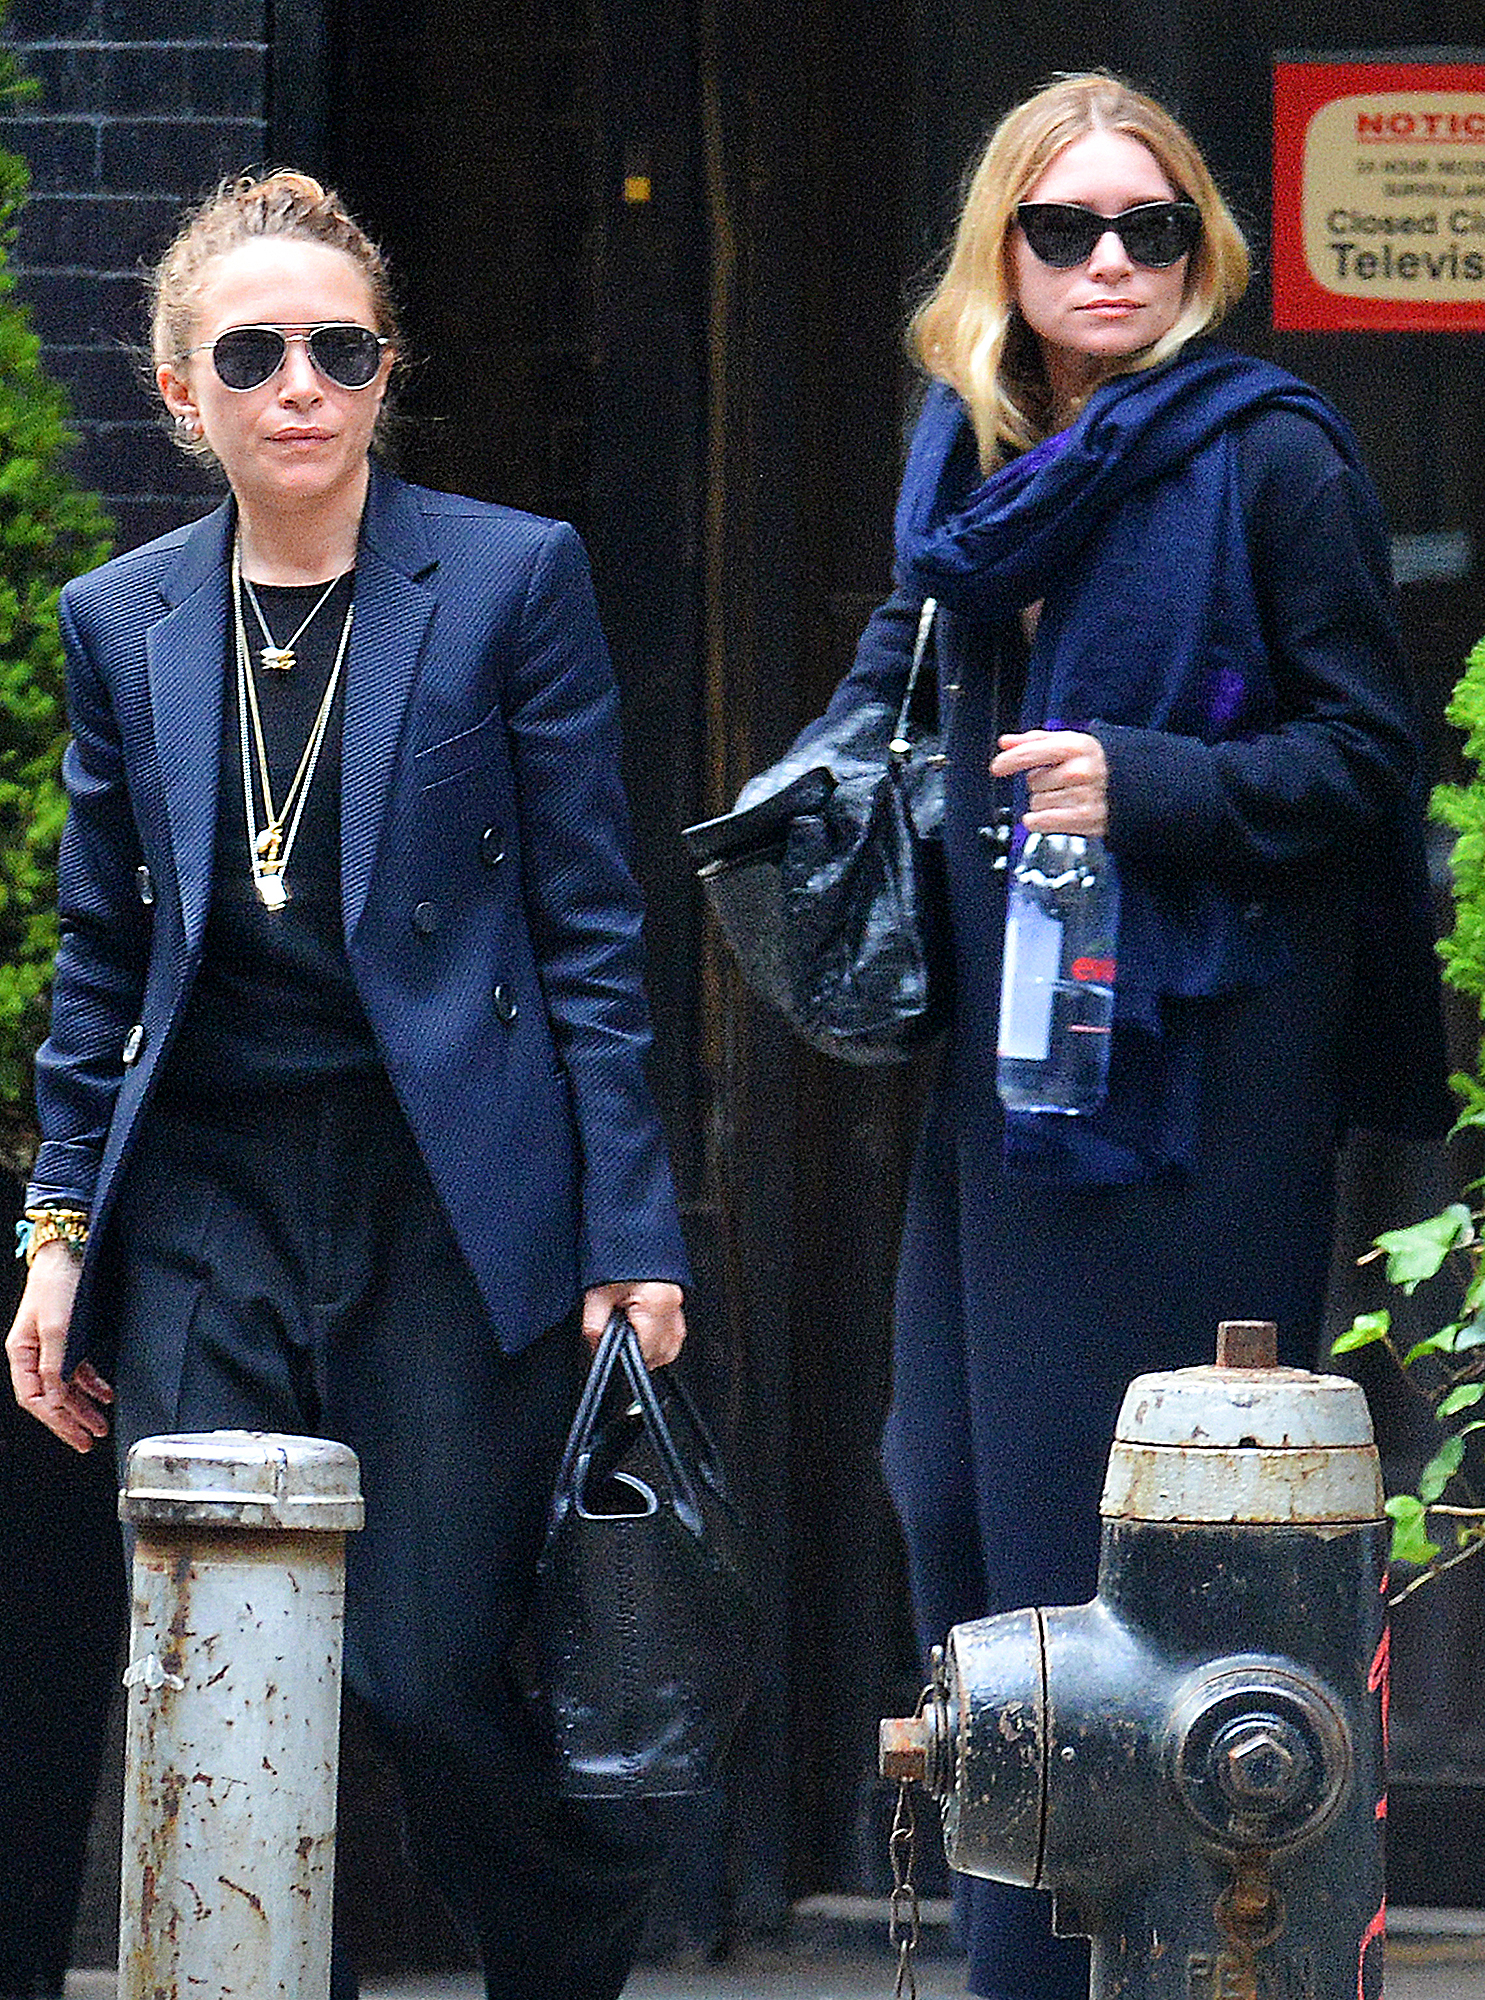 EXCLUSIVE: Mary Kate and Ashley Olsen are Spotted Out and About in New York City